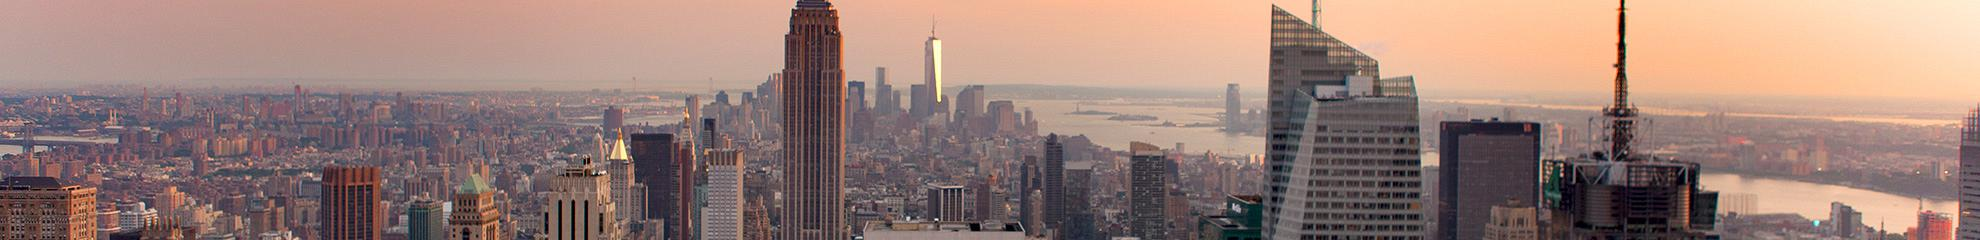 Vacanze studio di inglese per adulti a New York